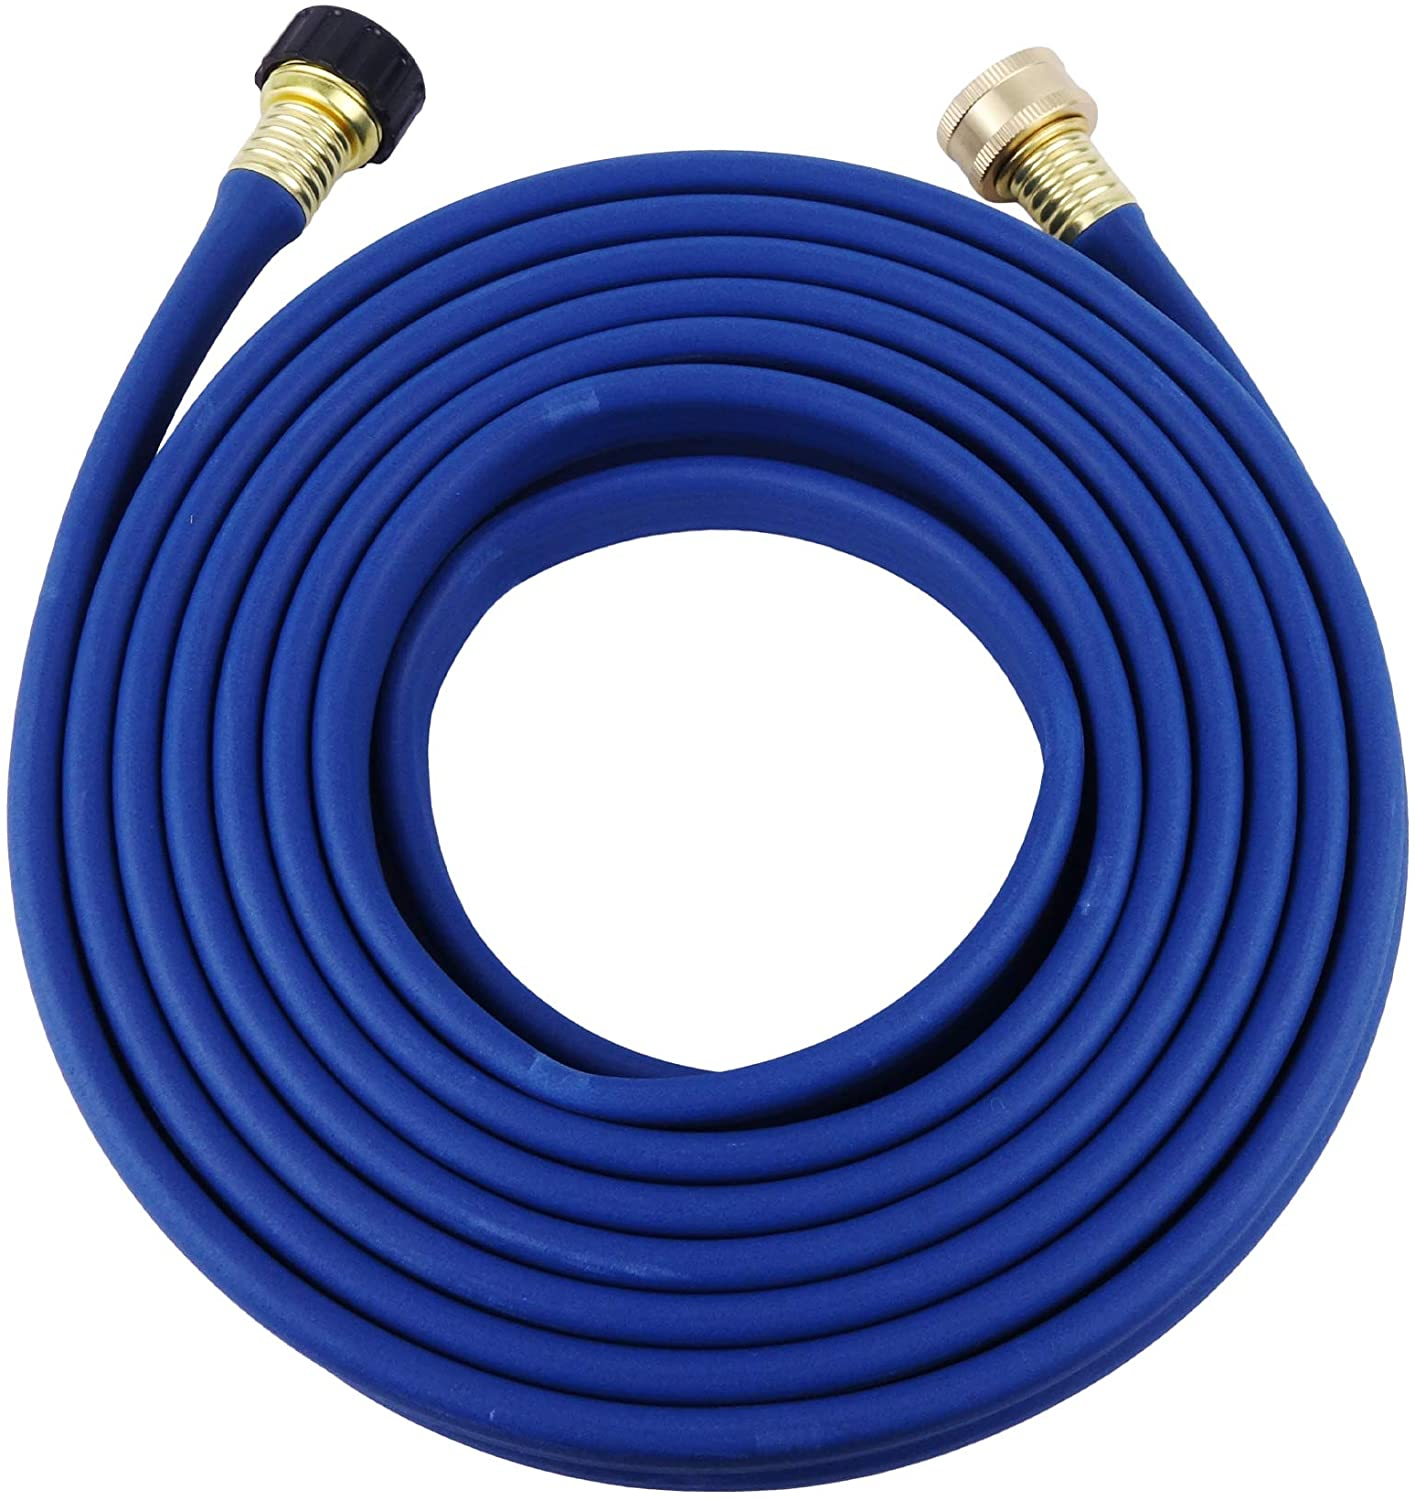 H2O WORKS Garden Flat Soaker Hose 1/2 in x 25ft,More Water Leakage, Heavy Duty Metal Hose Connector Ends, Perfect Delivery of Water,Garden Flower Bed and Vegetable Patch,Landscaping, Savings 80% Water